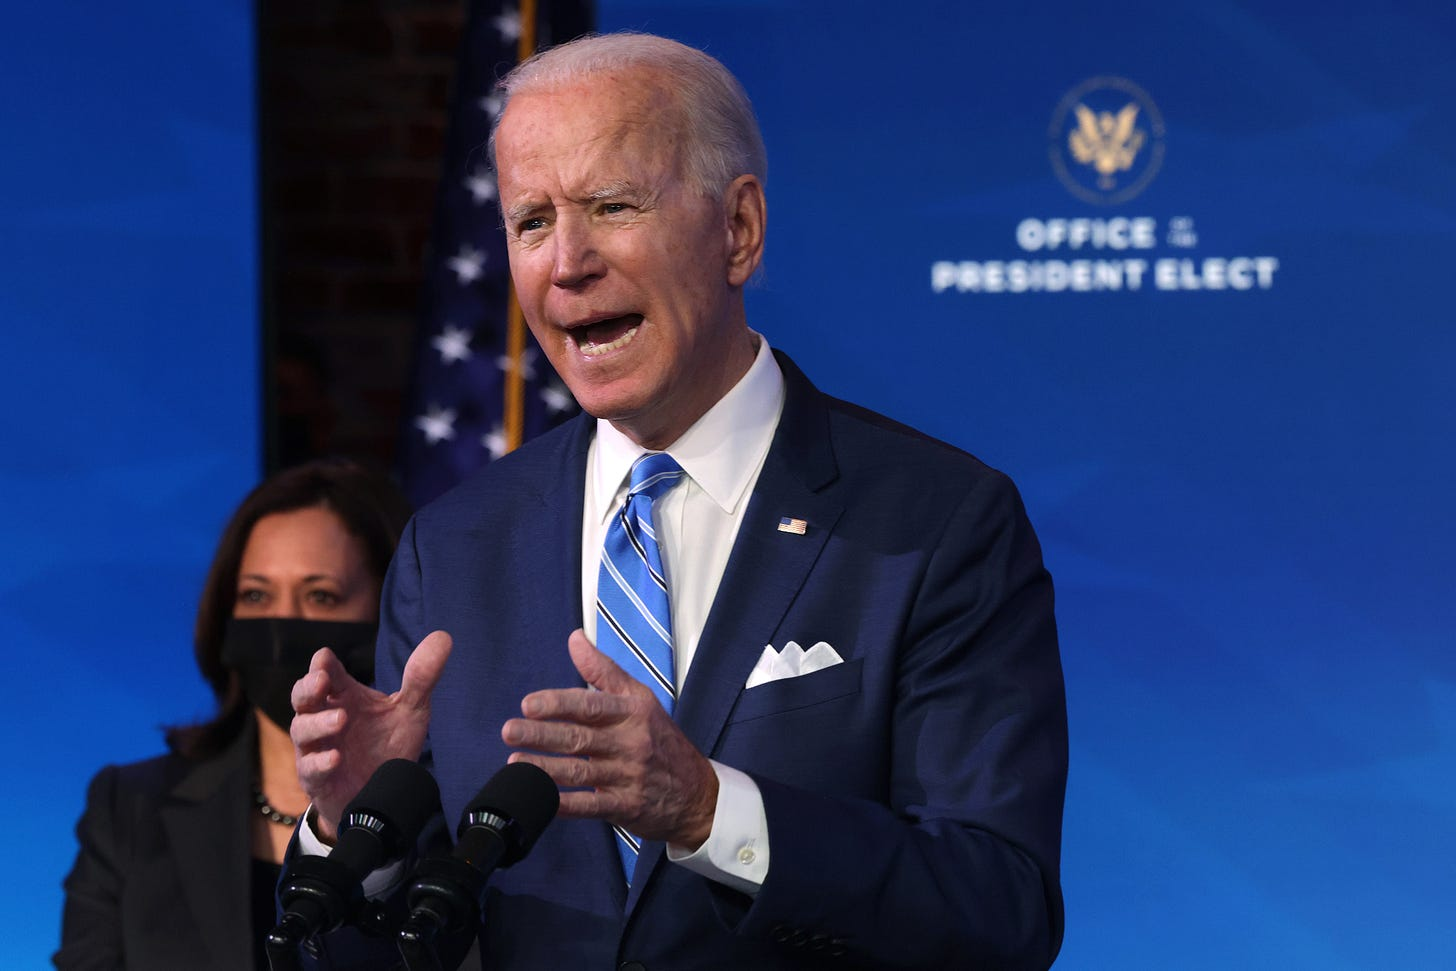 WILMINGTON, DELAWARE - JANUARY 14: U.S. President-elect Joe Biden (R) speaks as U.S. Vice President-elect Kamala Harris (L) looks on he lays out his plan for combating the coronavirus and jump-starting the nation's economy at the Queen theater January 14, 2021 in Wilmington, Delaware. President-elect Biden is expected to unveil a stimulus package with a price tag of trillions of dollars including a $1,400 direct payment to individuals who have been struggling with the economic turmoil caused by the COVID-19 pandemic. (Photo by Alex Wong/Getty Images)